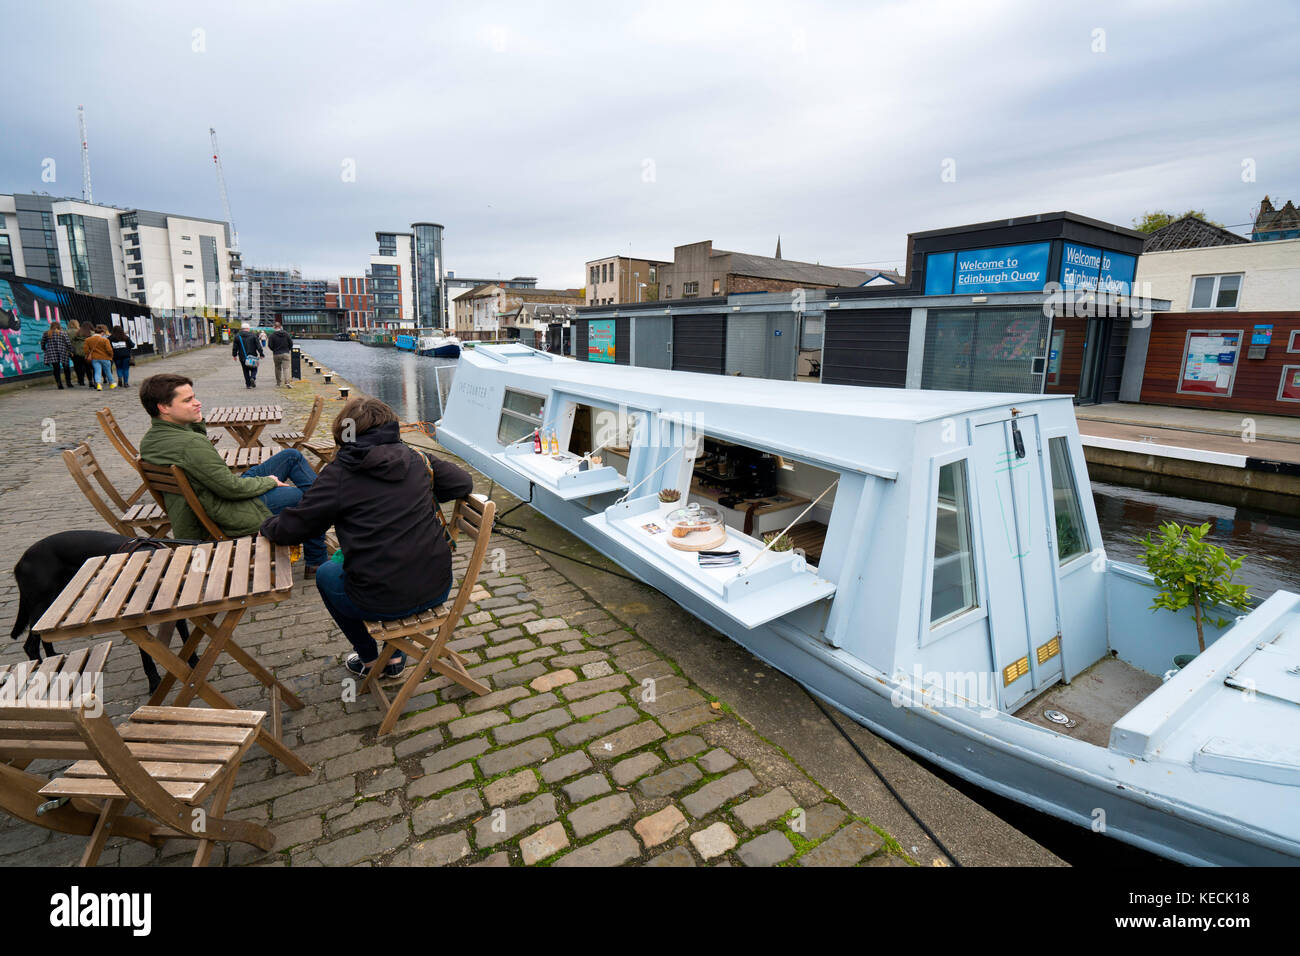 Small cafe inside narrowboat on Union Canal at Fountainbridge in Edinburgh , Scotland, United Kingdom. - Stock Image